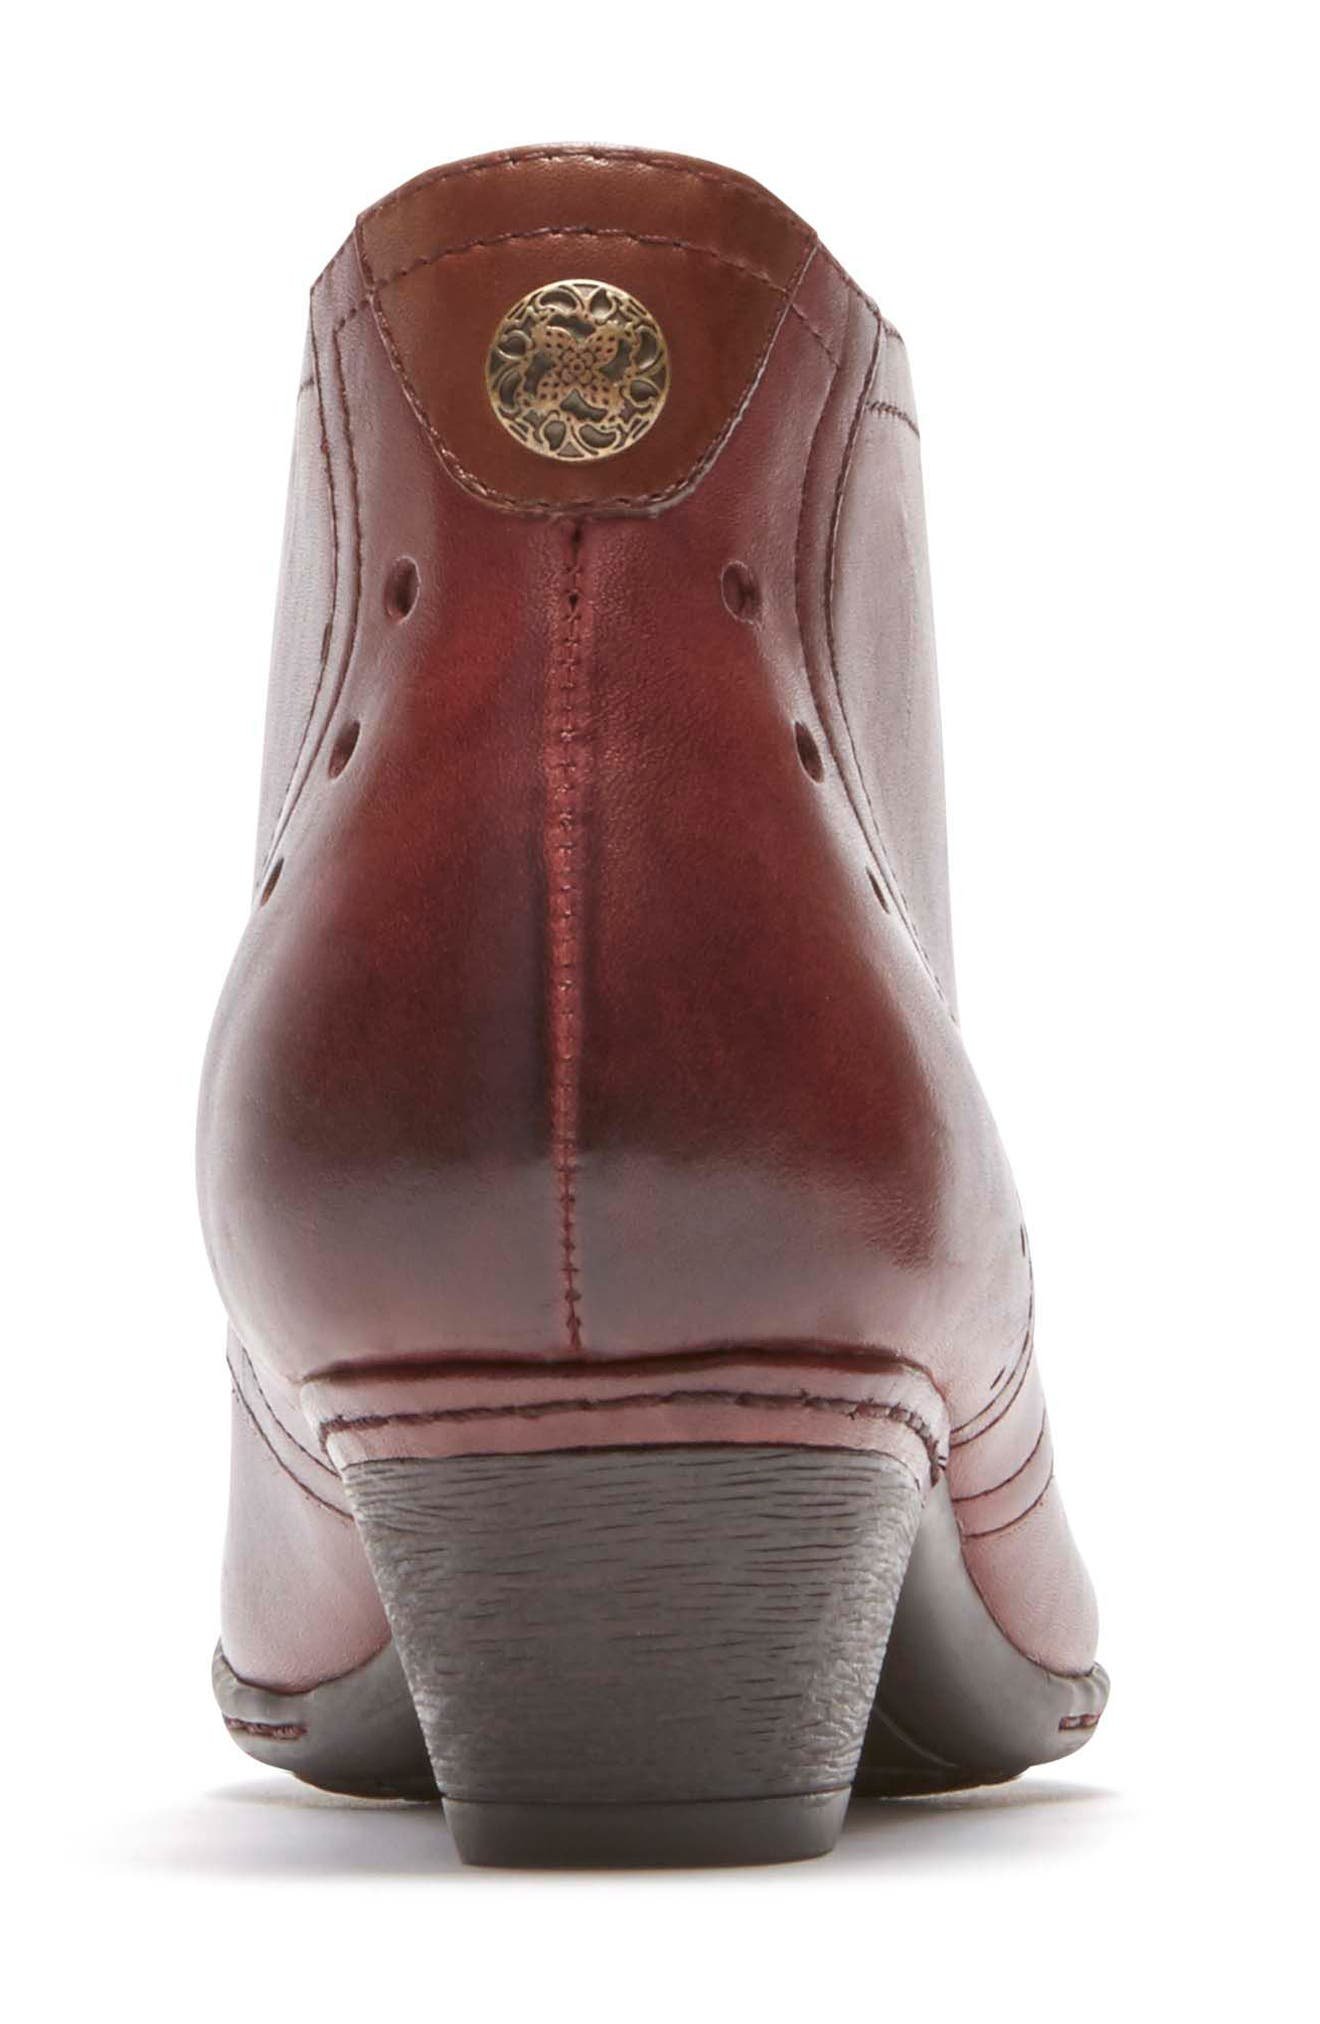 Aria Leather Boot,                             Alternate thumbnail 8, color,                             MERLOT LEATHER